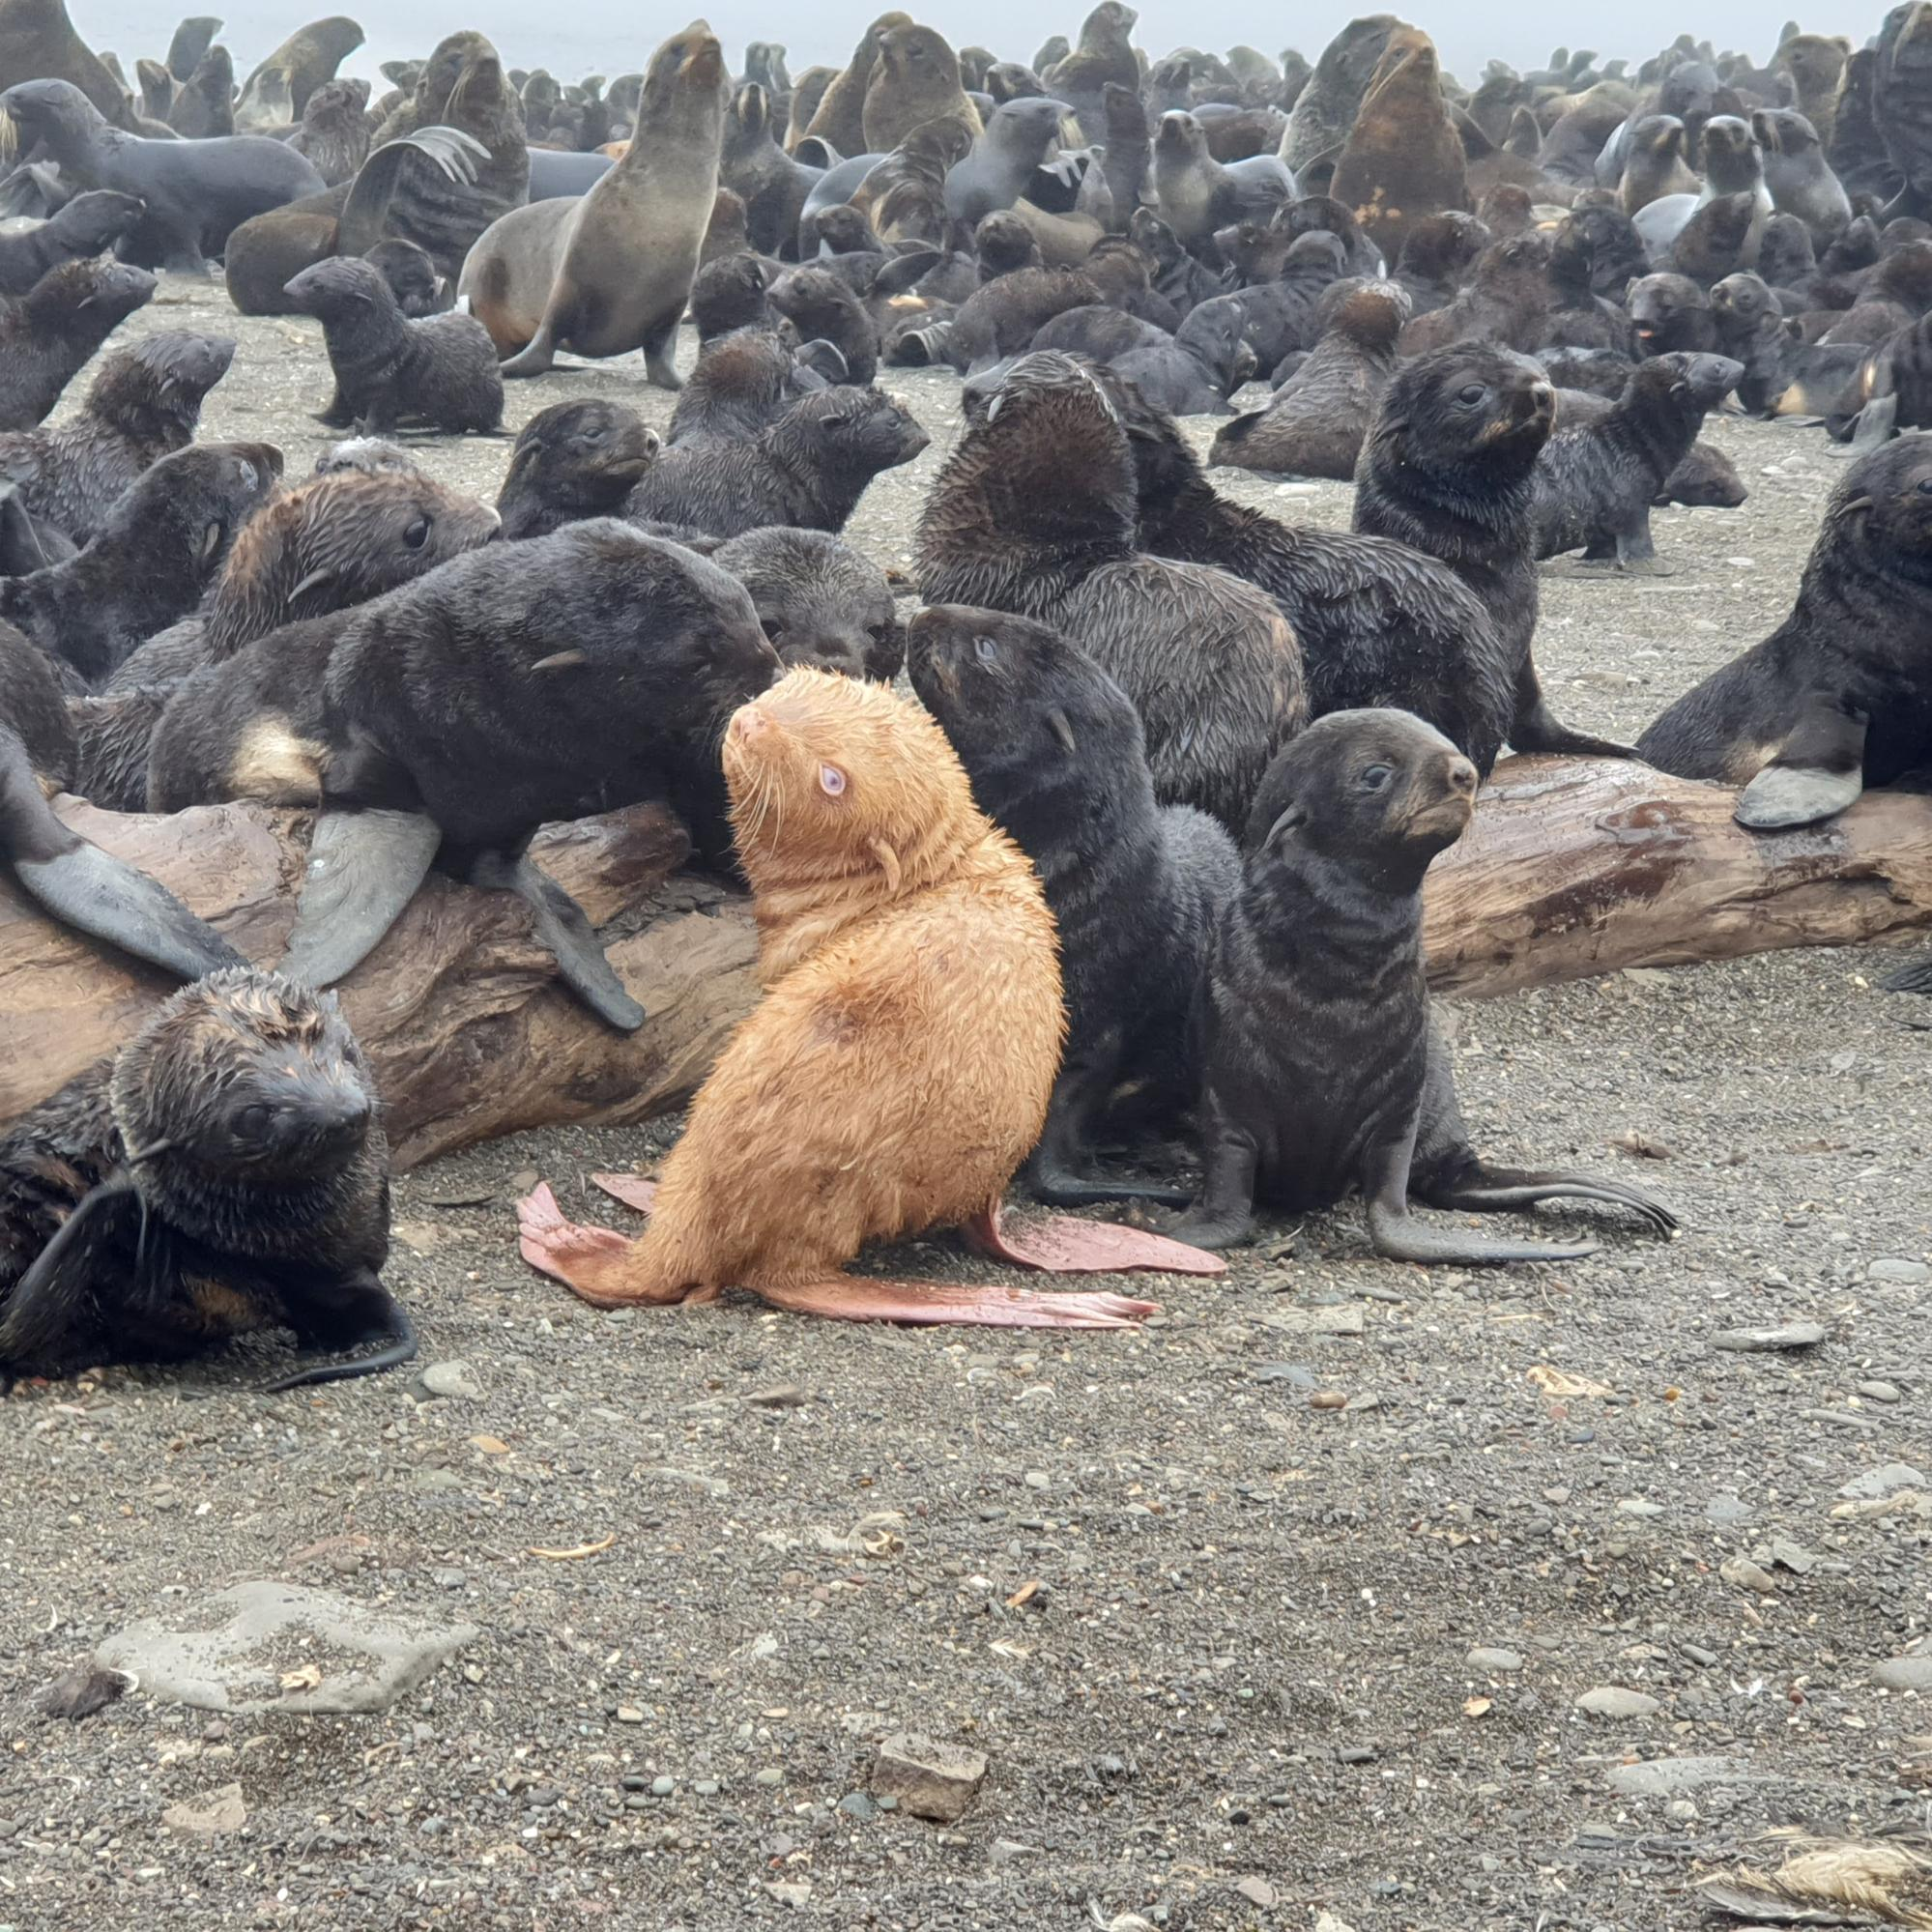 Photo of an albino fur seal pup on a beach with other fur seal pups and adults.